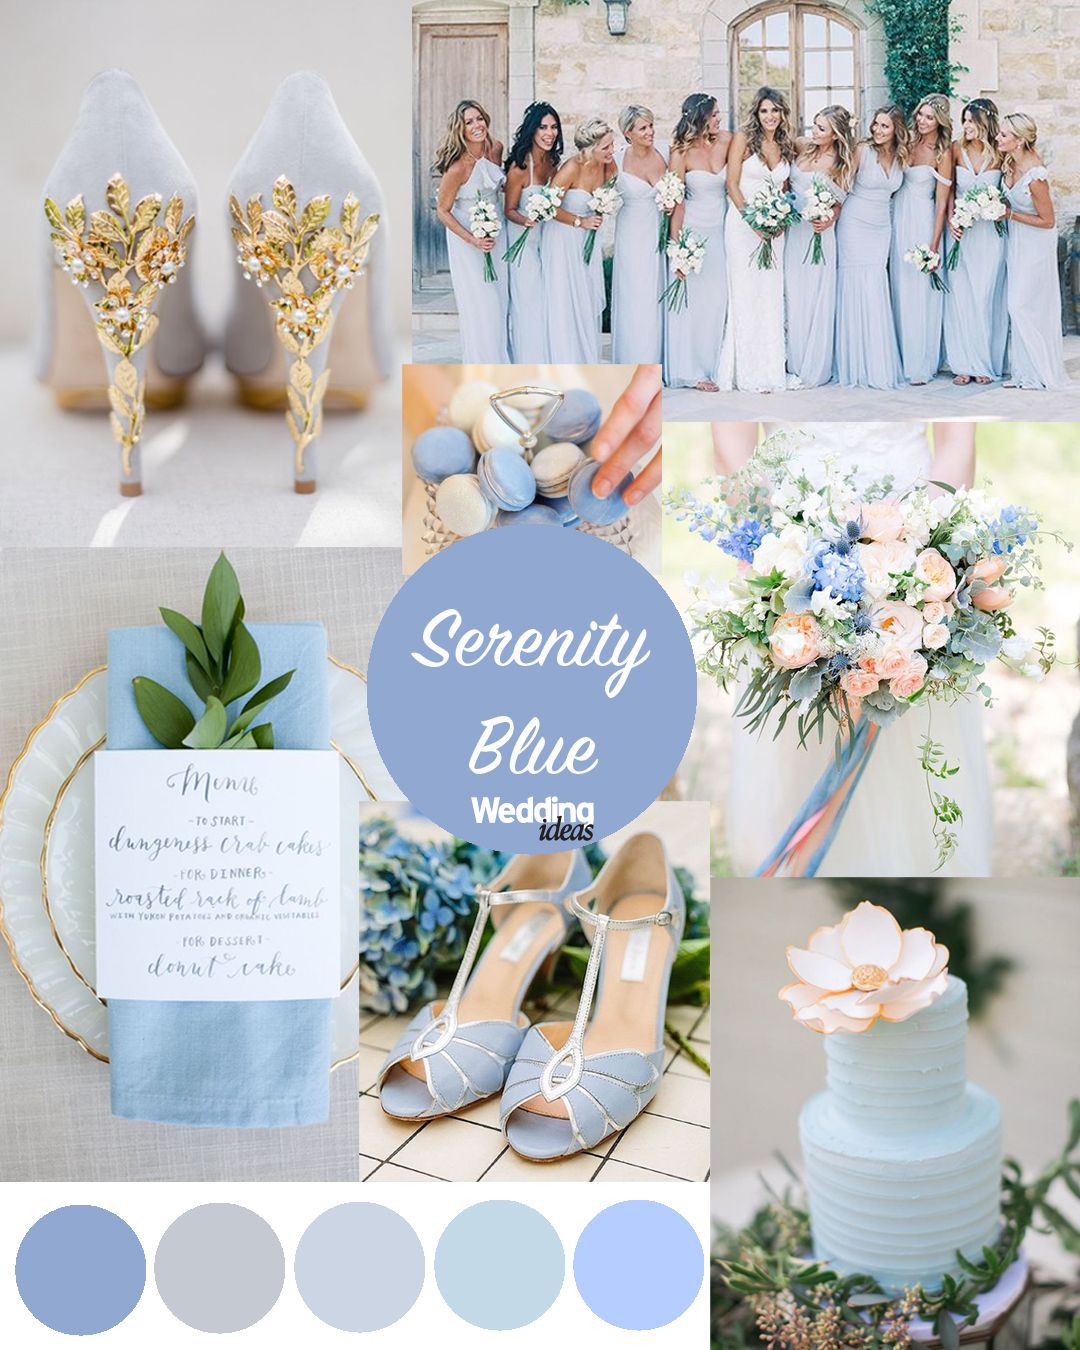 Pantone colours of the year our favourite ideas for ways to use pantone colours of the year our favourite ideas for ways to use serenity blue in your wedding colour scheme add it to your cake shoes flowers and more junglespirit Image collections